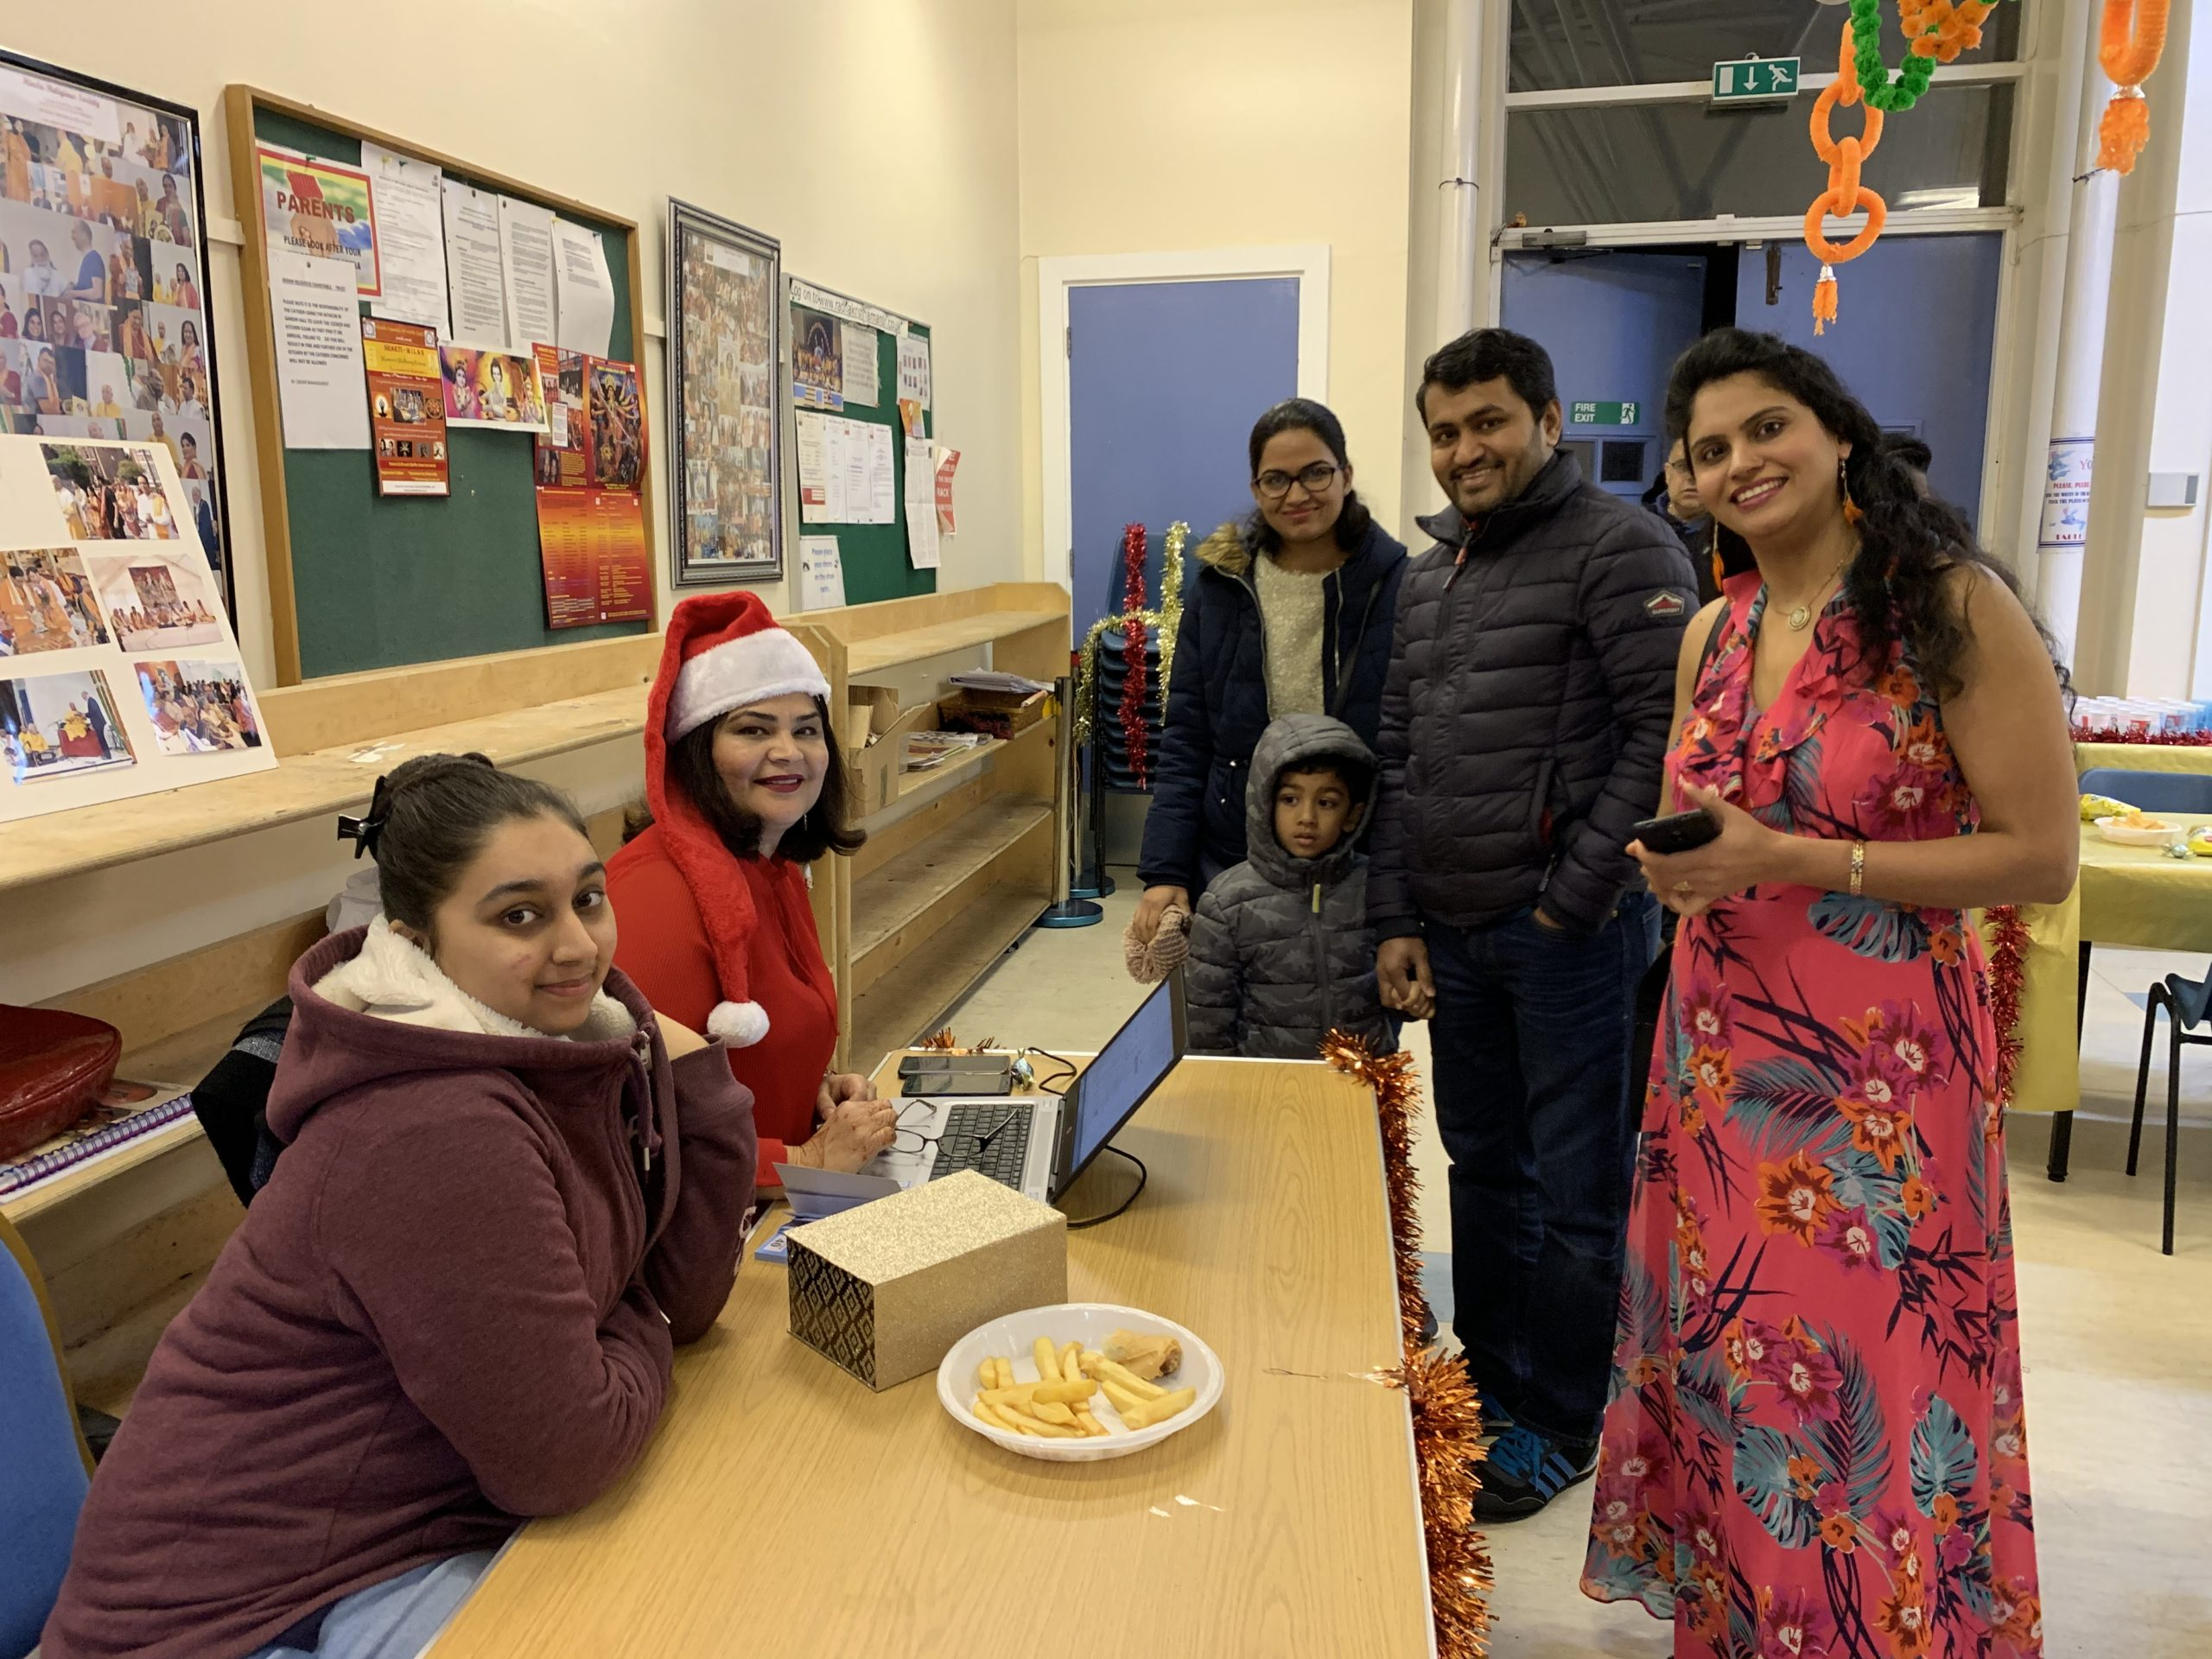 Childrens Christmas Party - Sunday 22nd December 2019